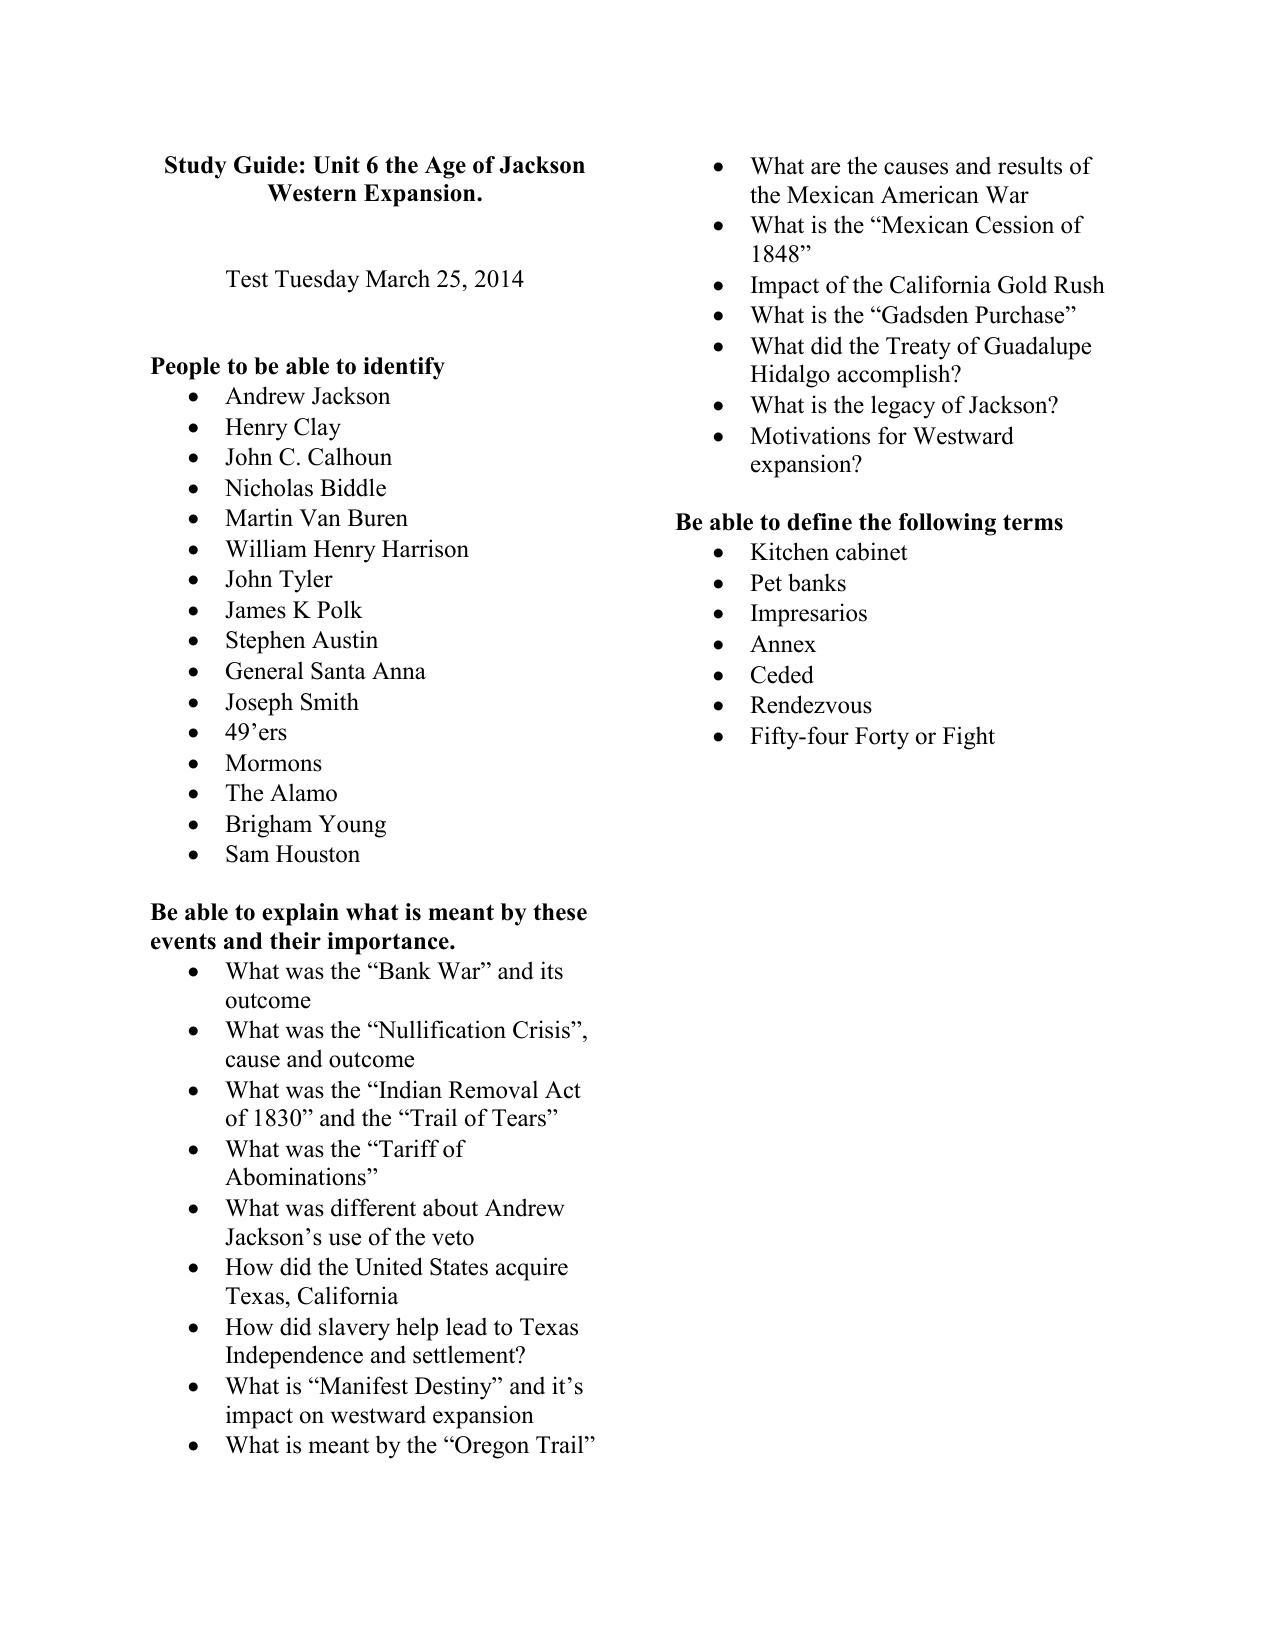 Study Guide Unit 6 The Age Of Jackson And Western Expansion